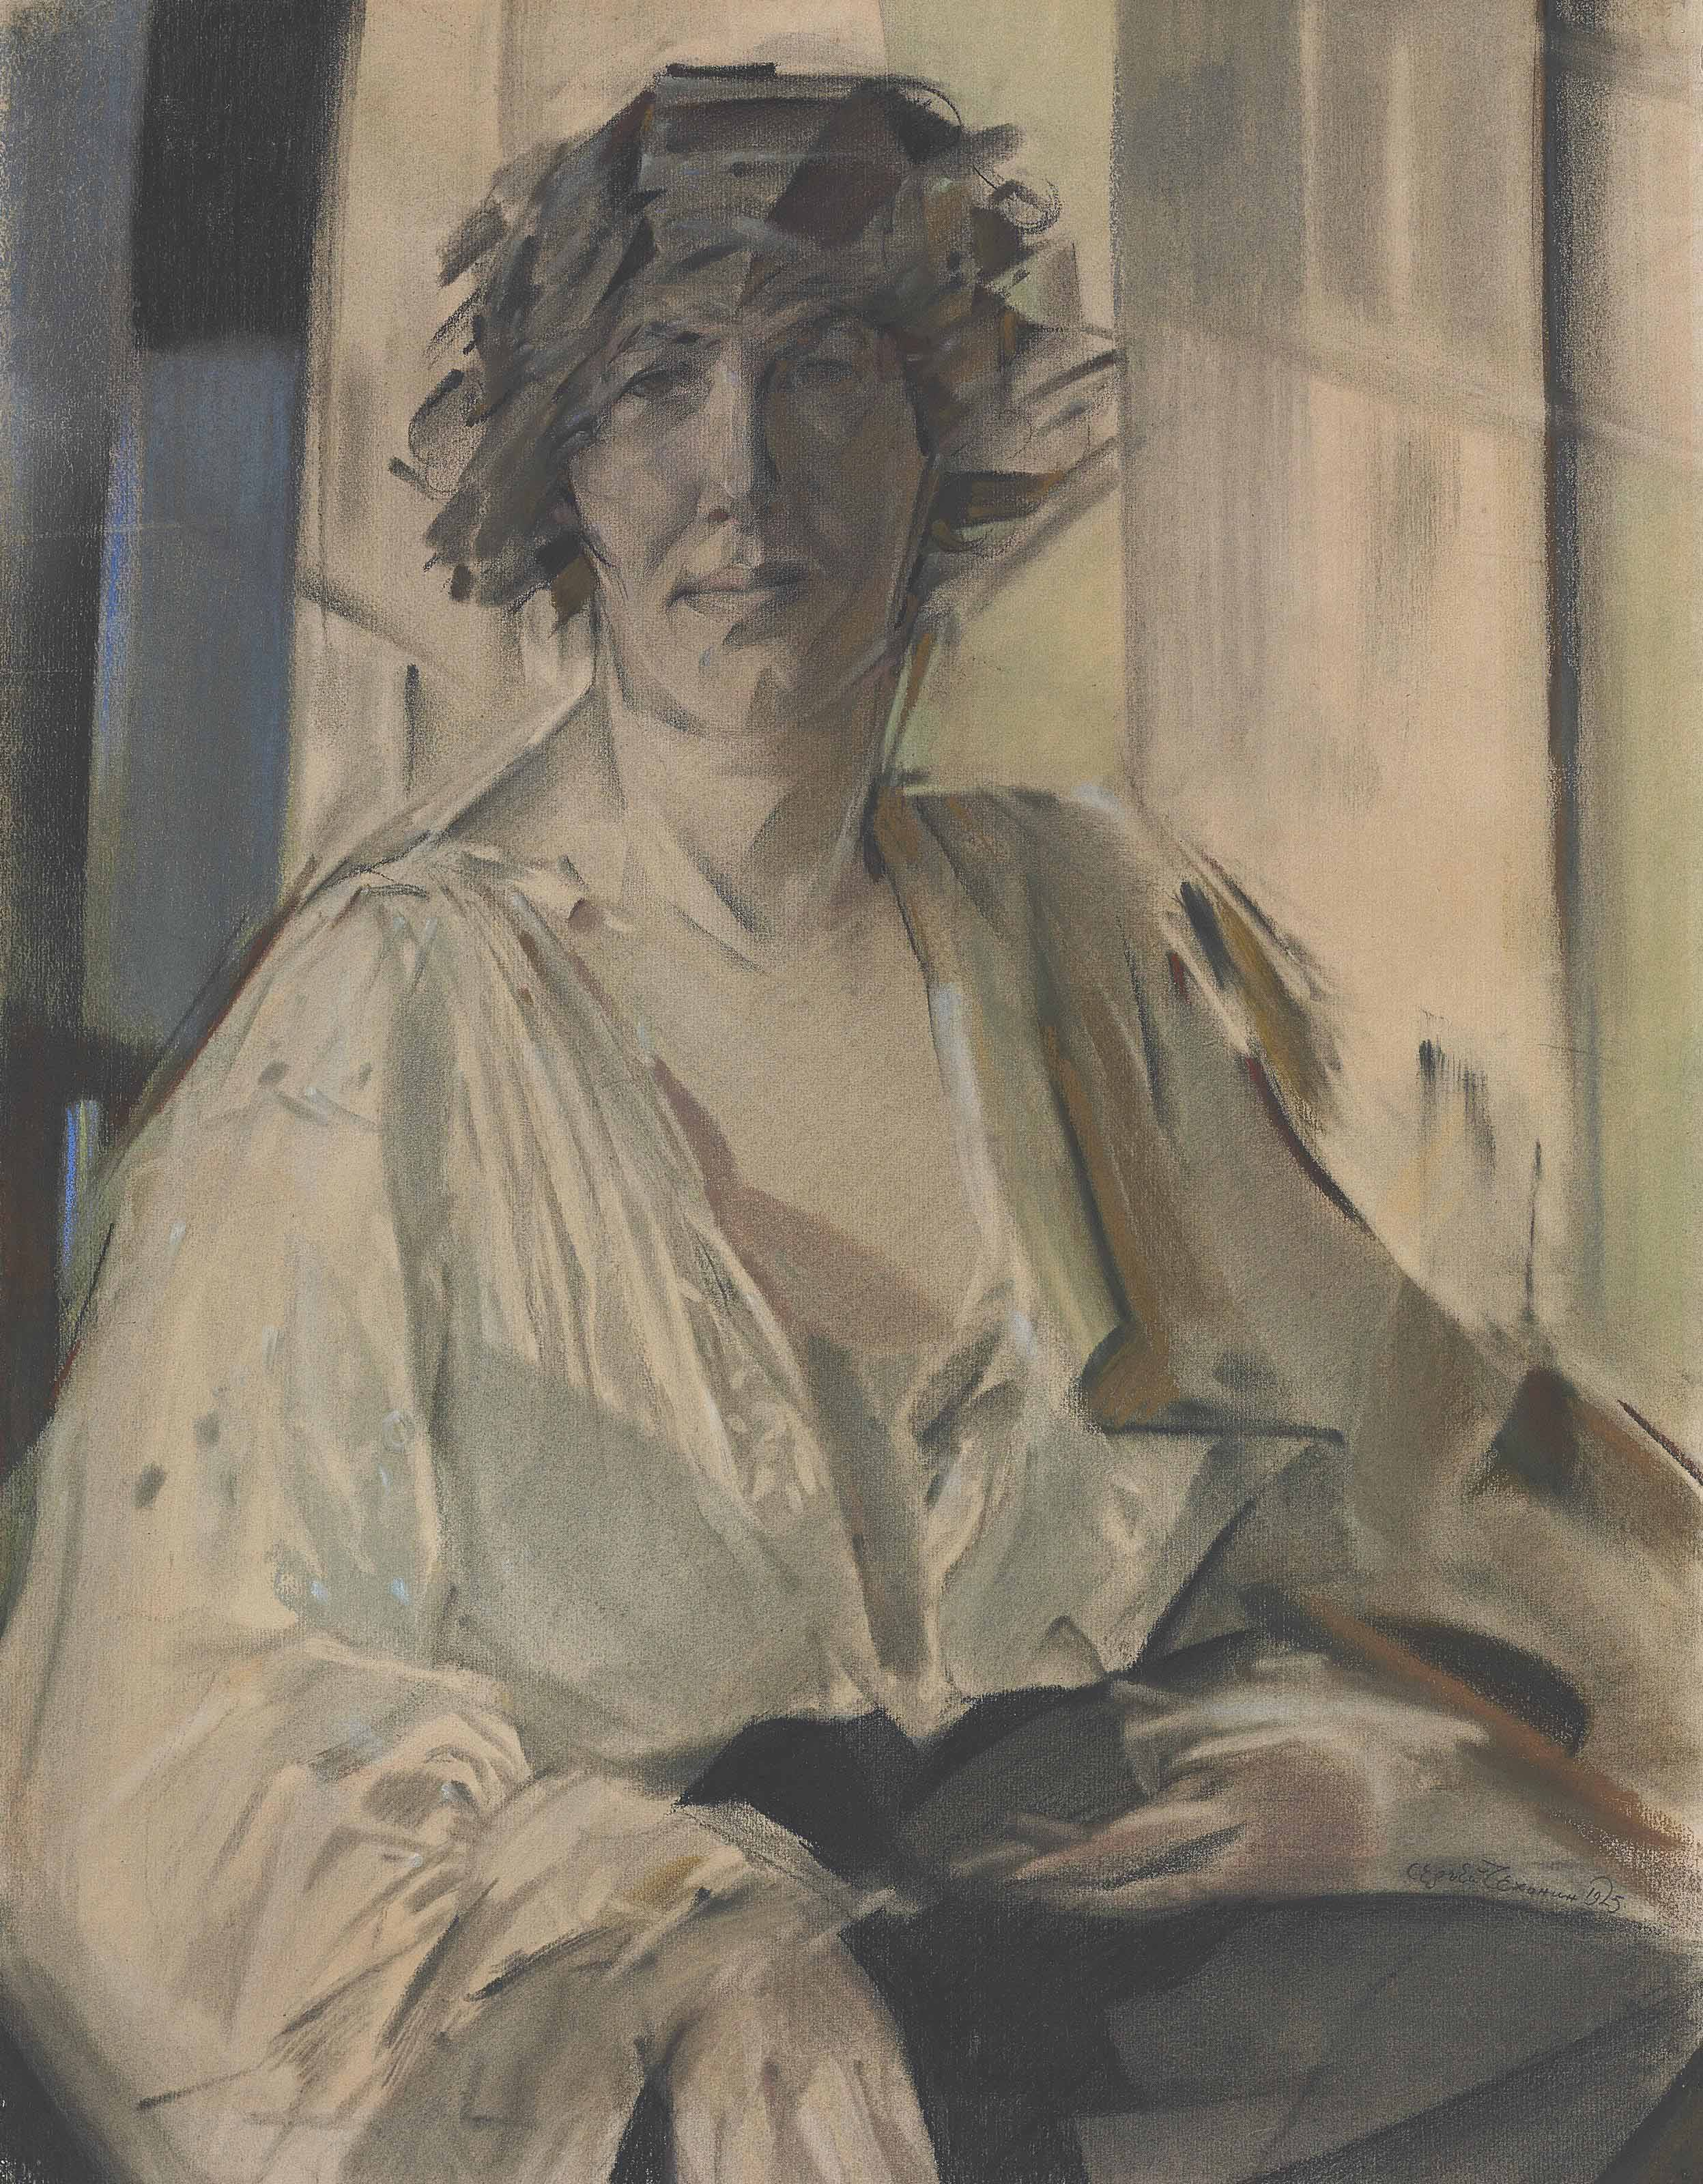 Portrait of the artist's wife, Lydia Vytchegjanine (1889-1960)